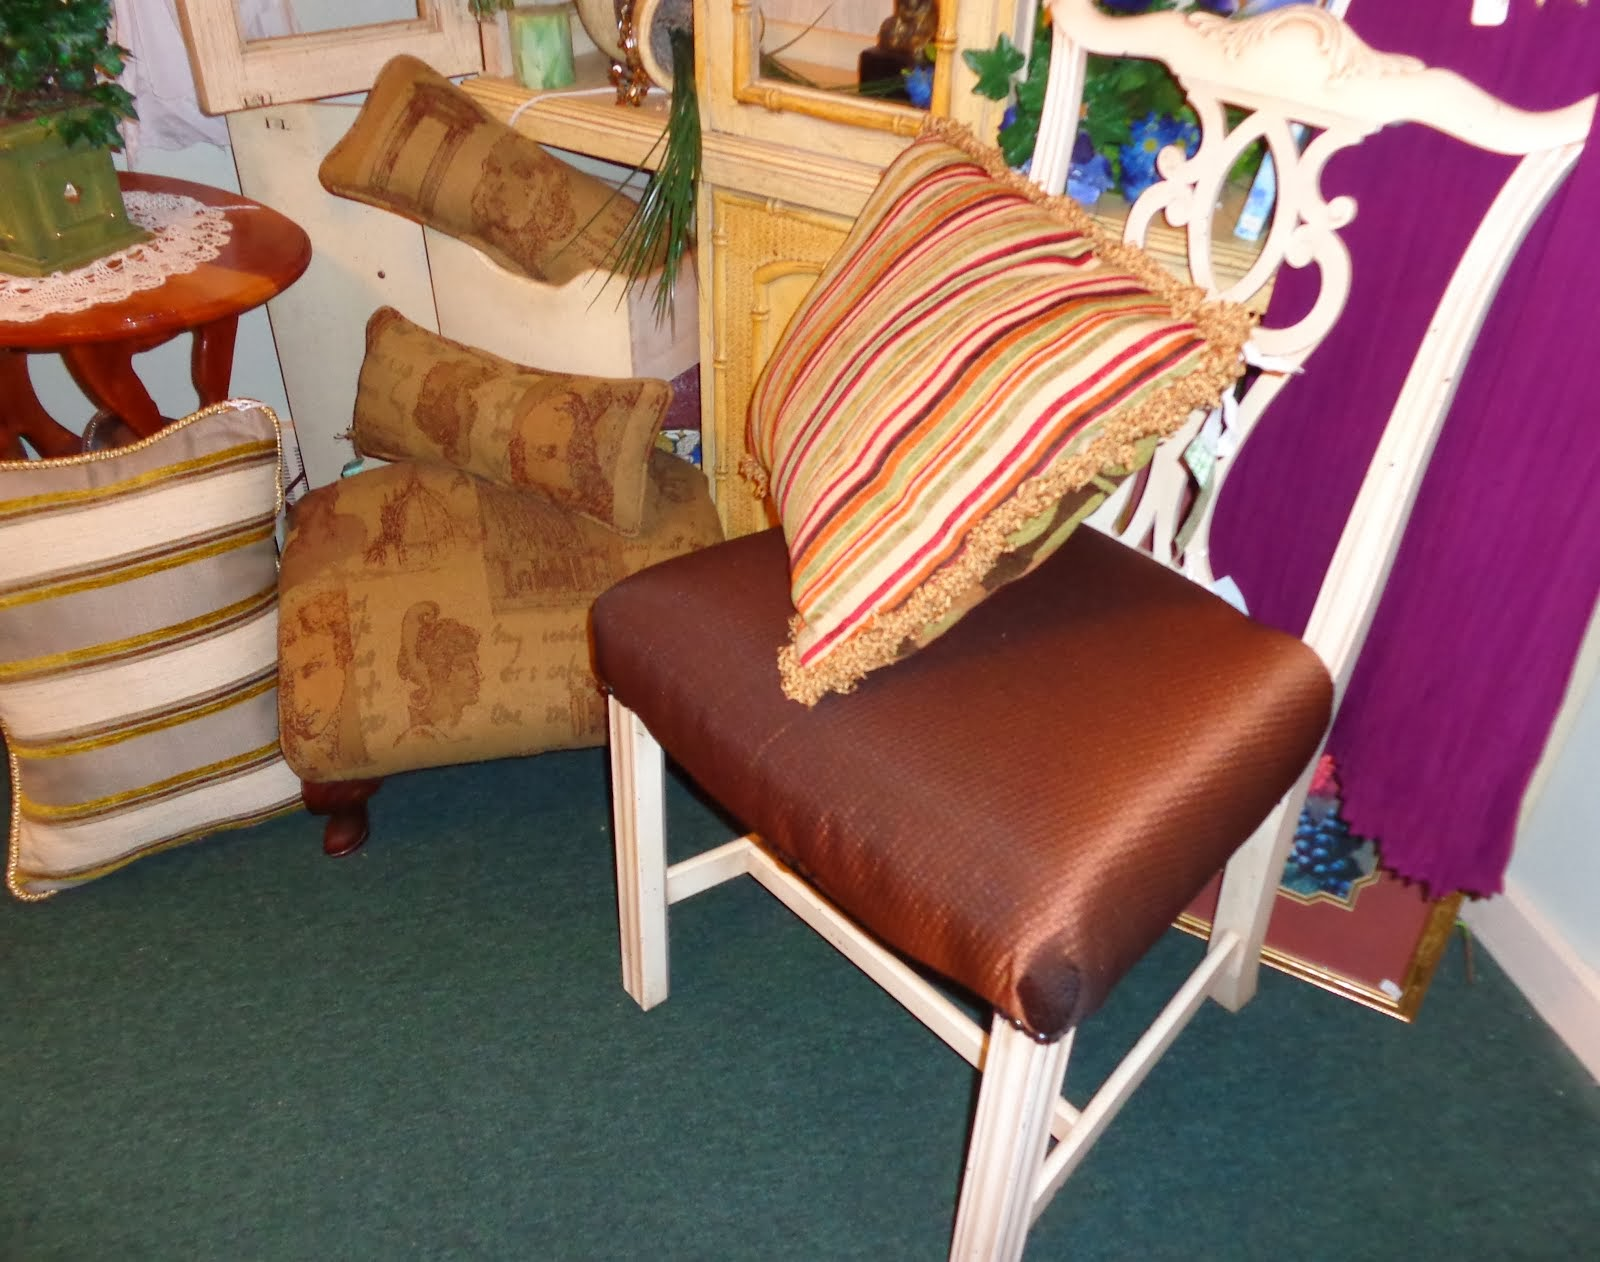 Chair, footstool and pillows